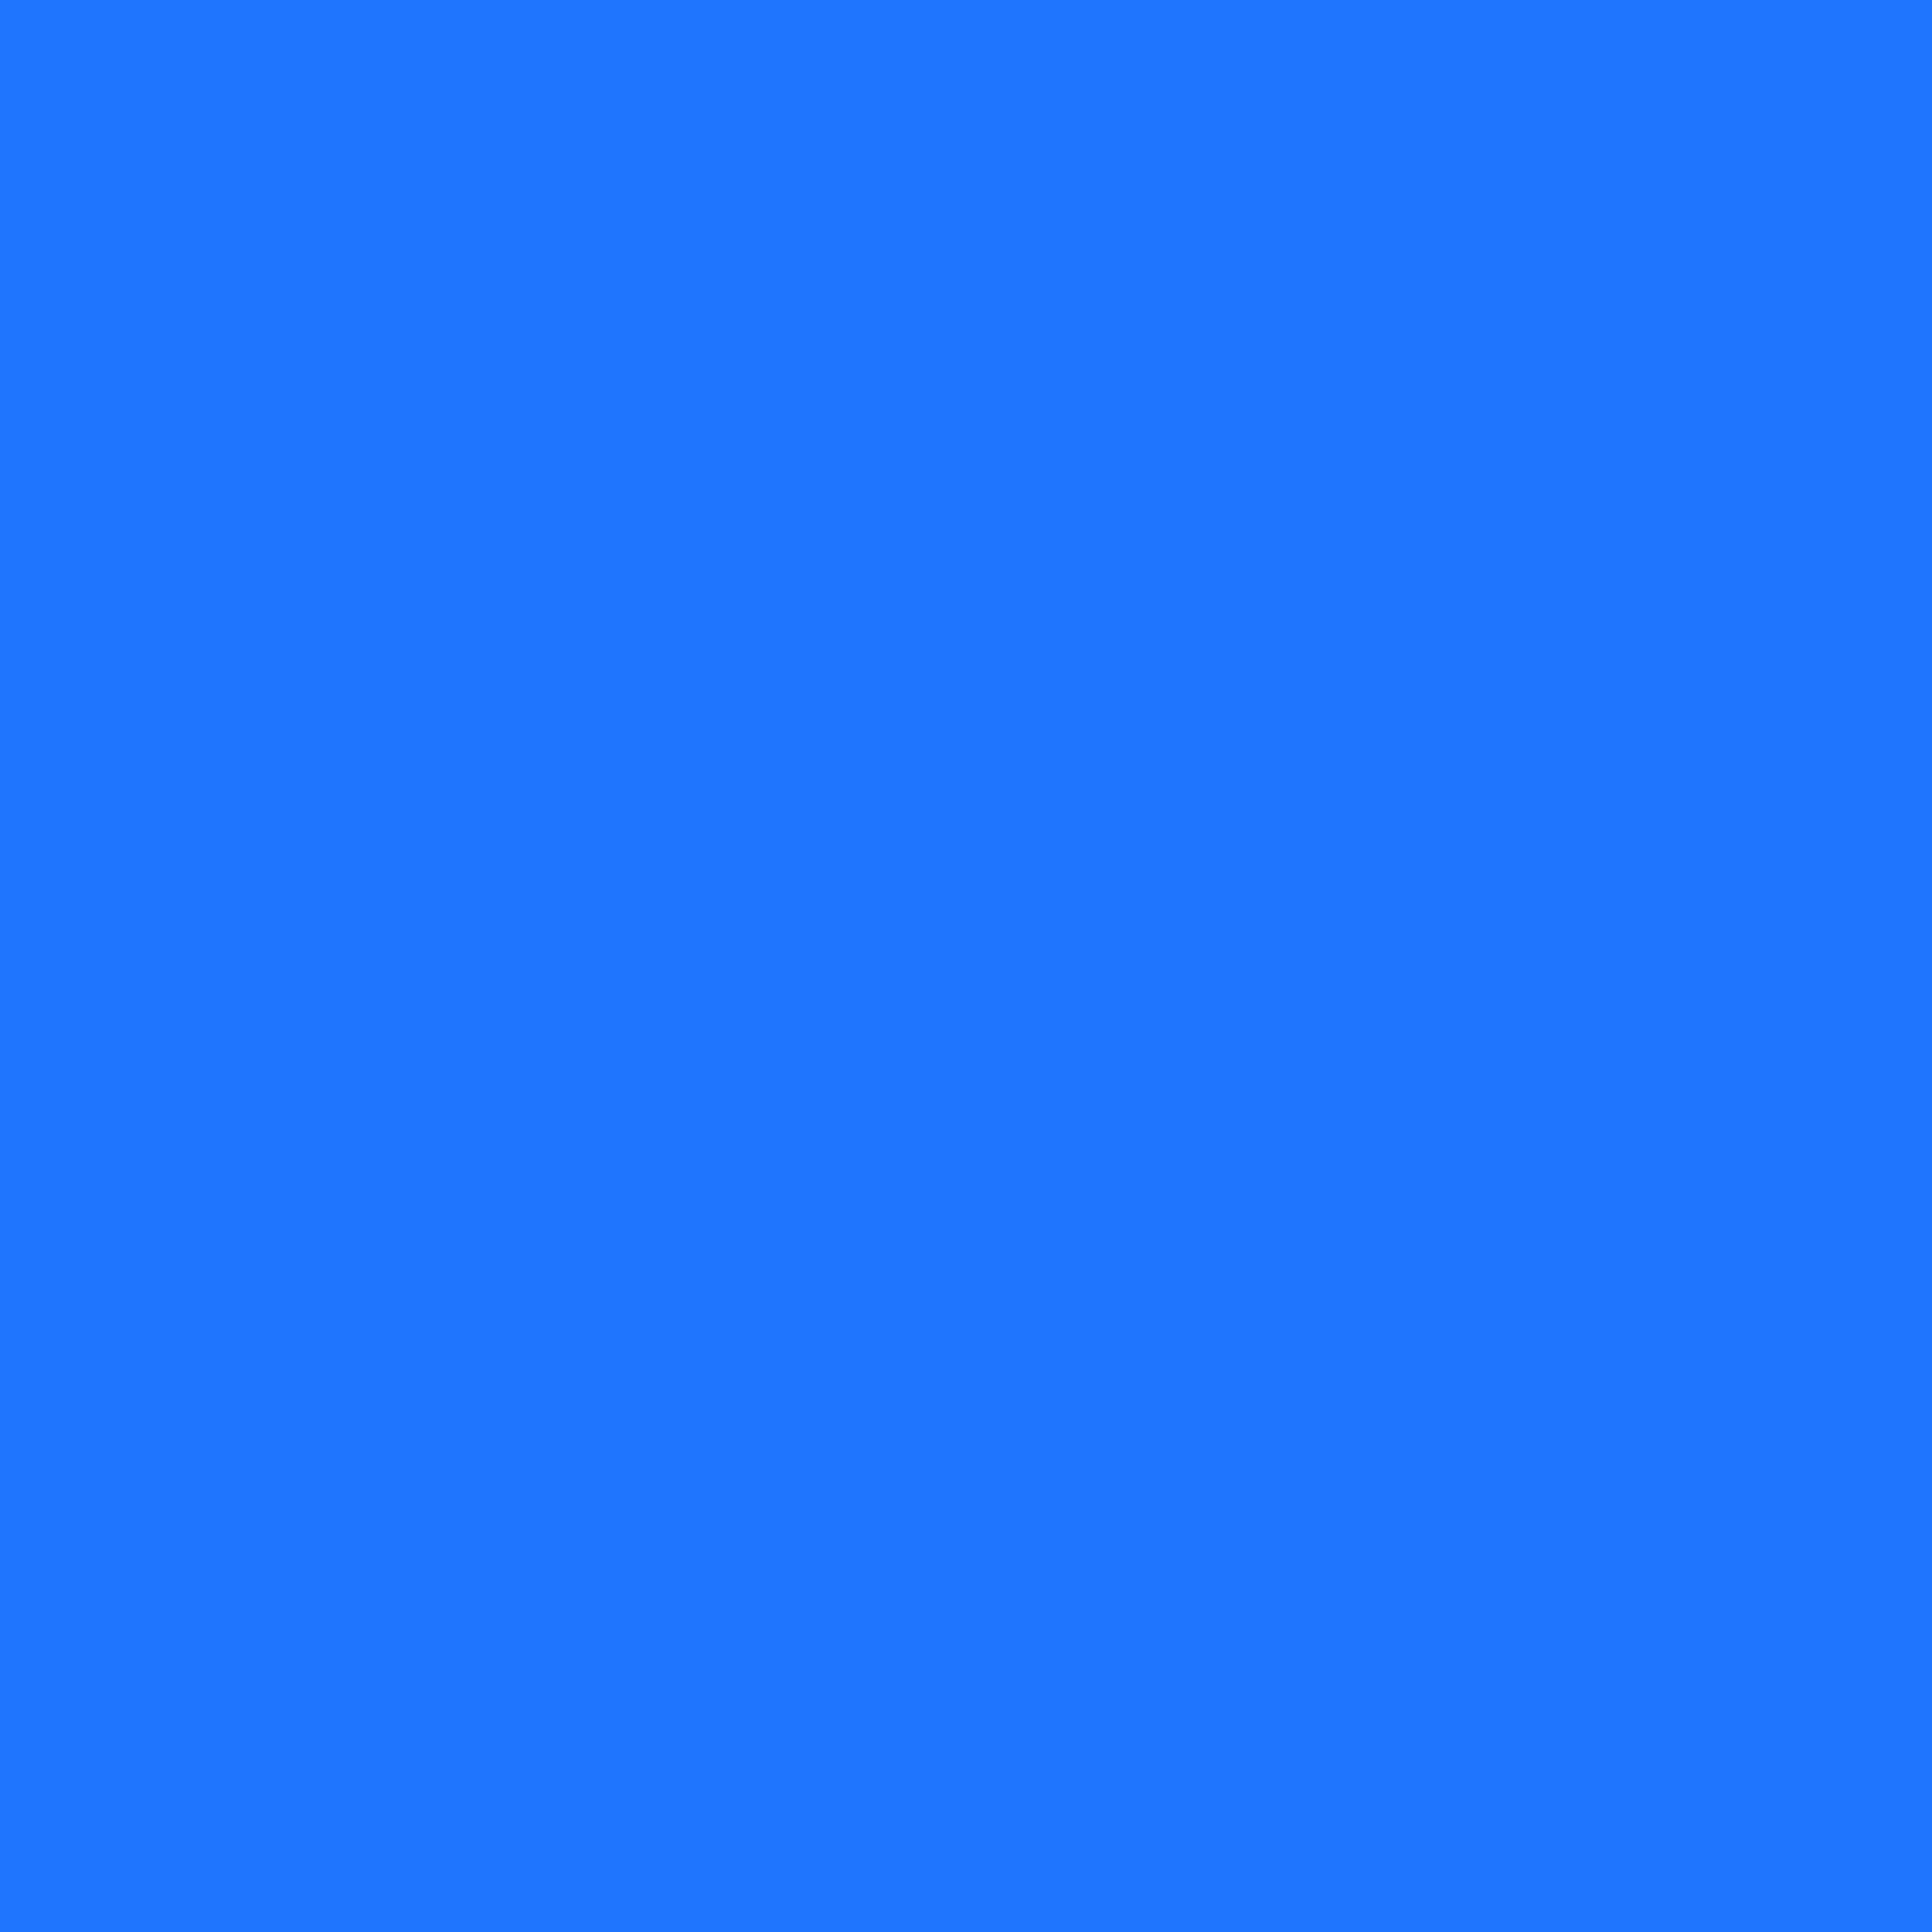 2048x2048 Blue Crayola Solid Color Background